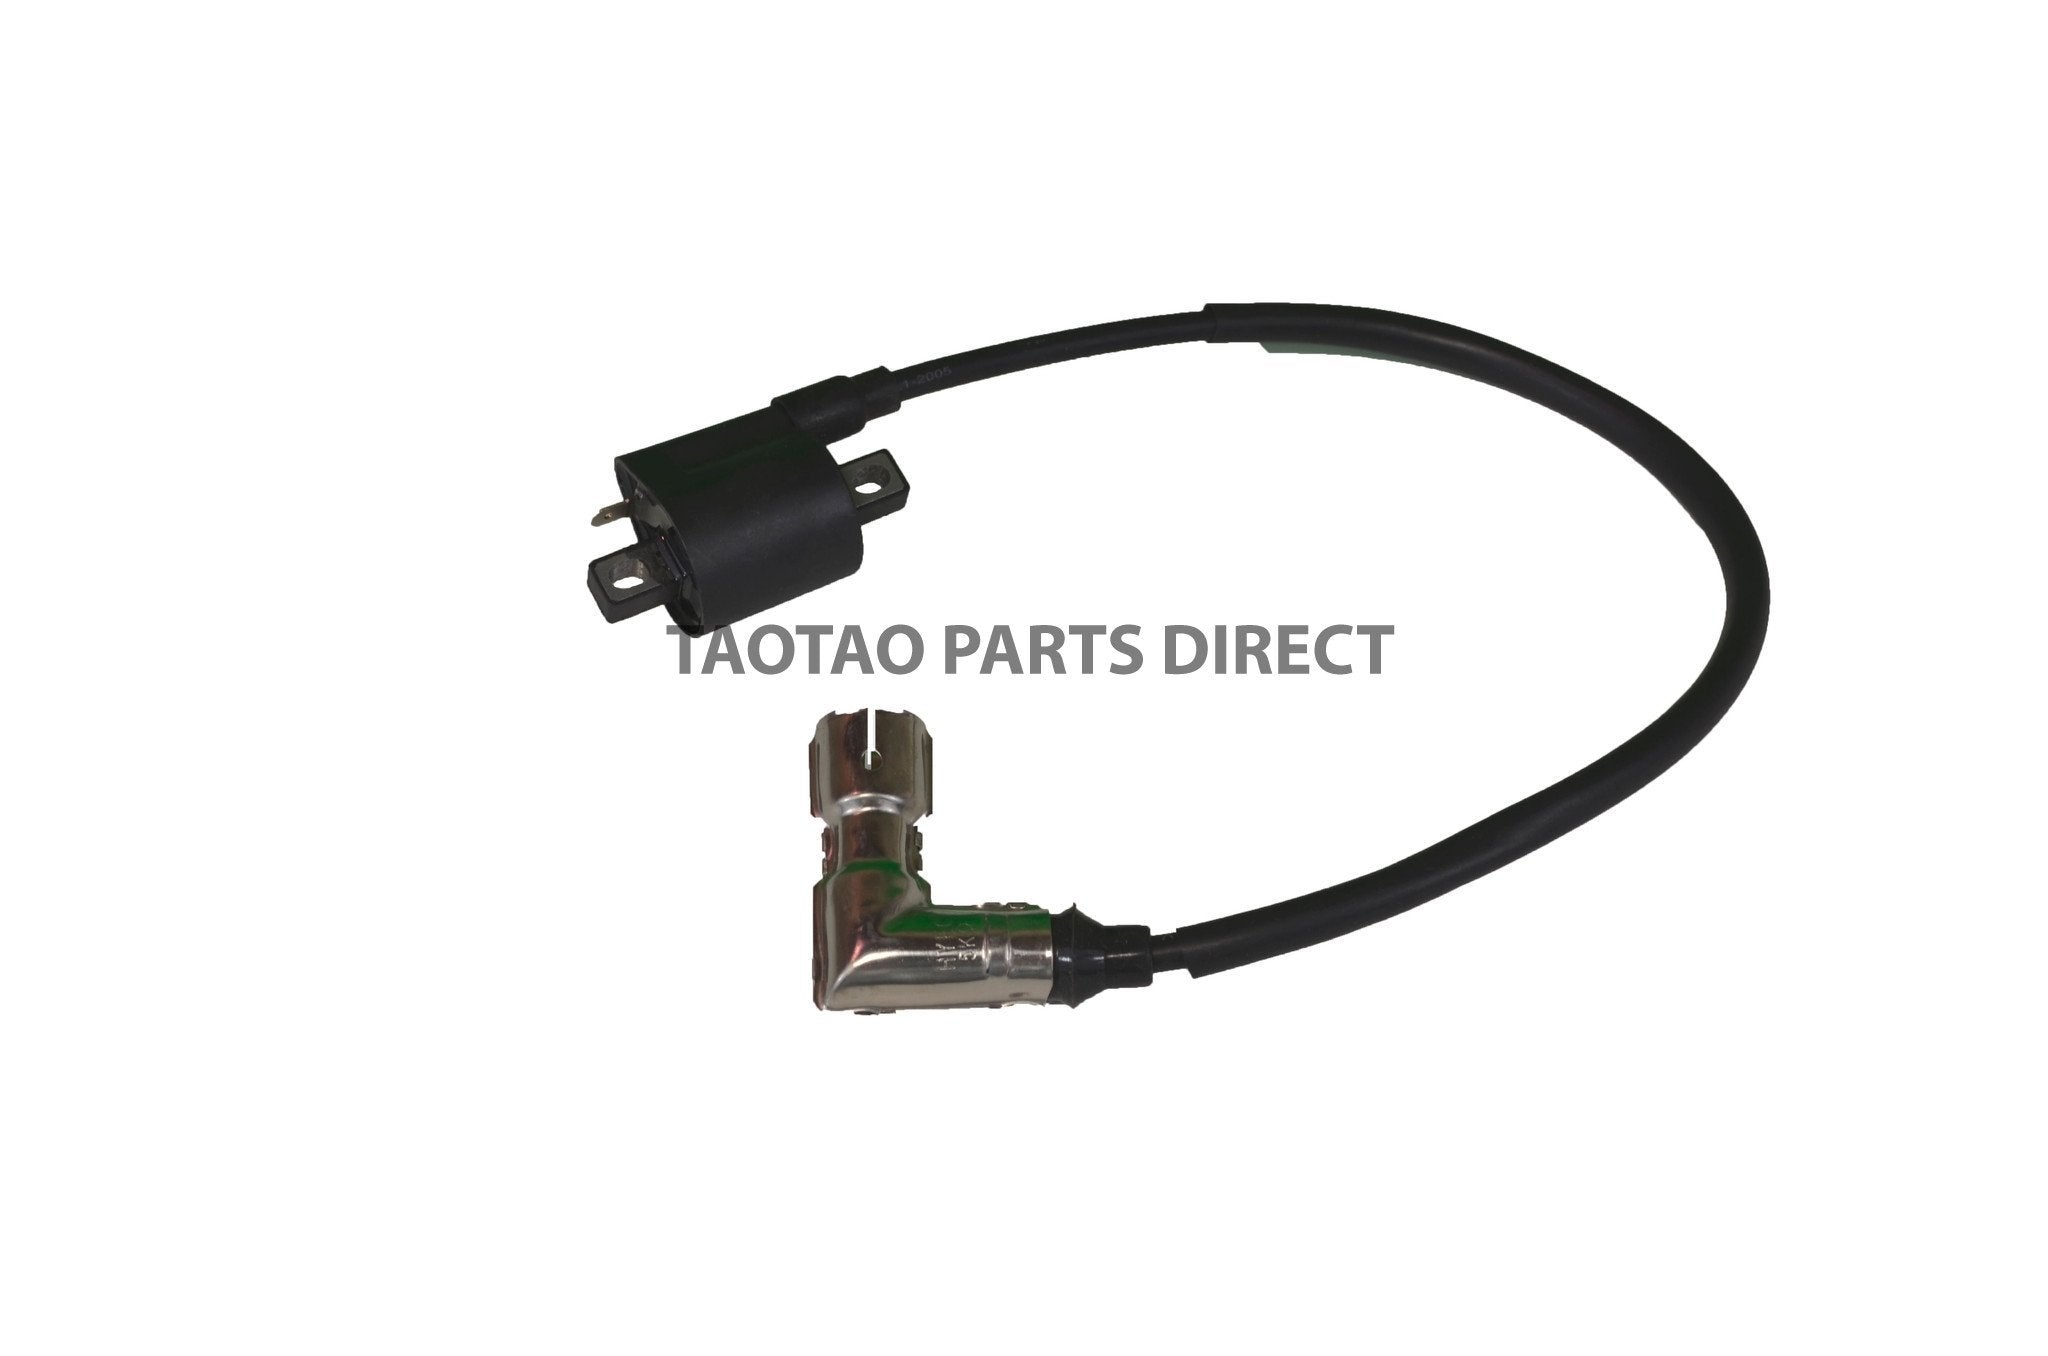 Ignition Coil For 250cc and 300cc ATV's - TaoTaoPartsDirect.com